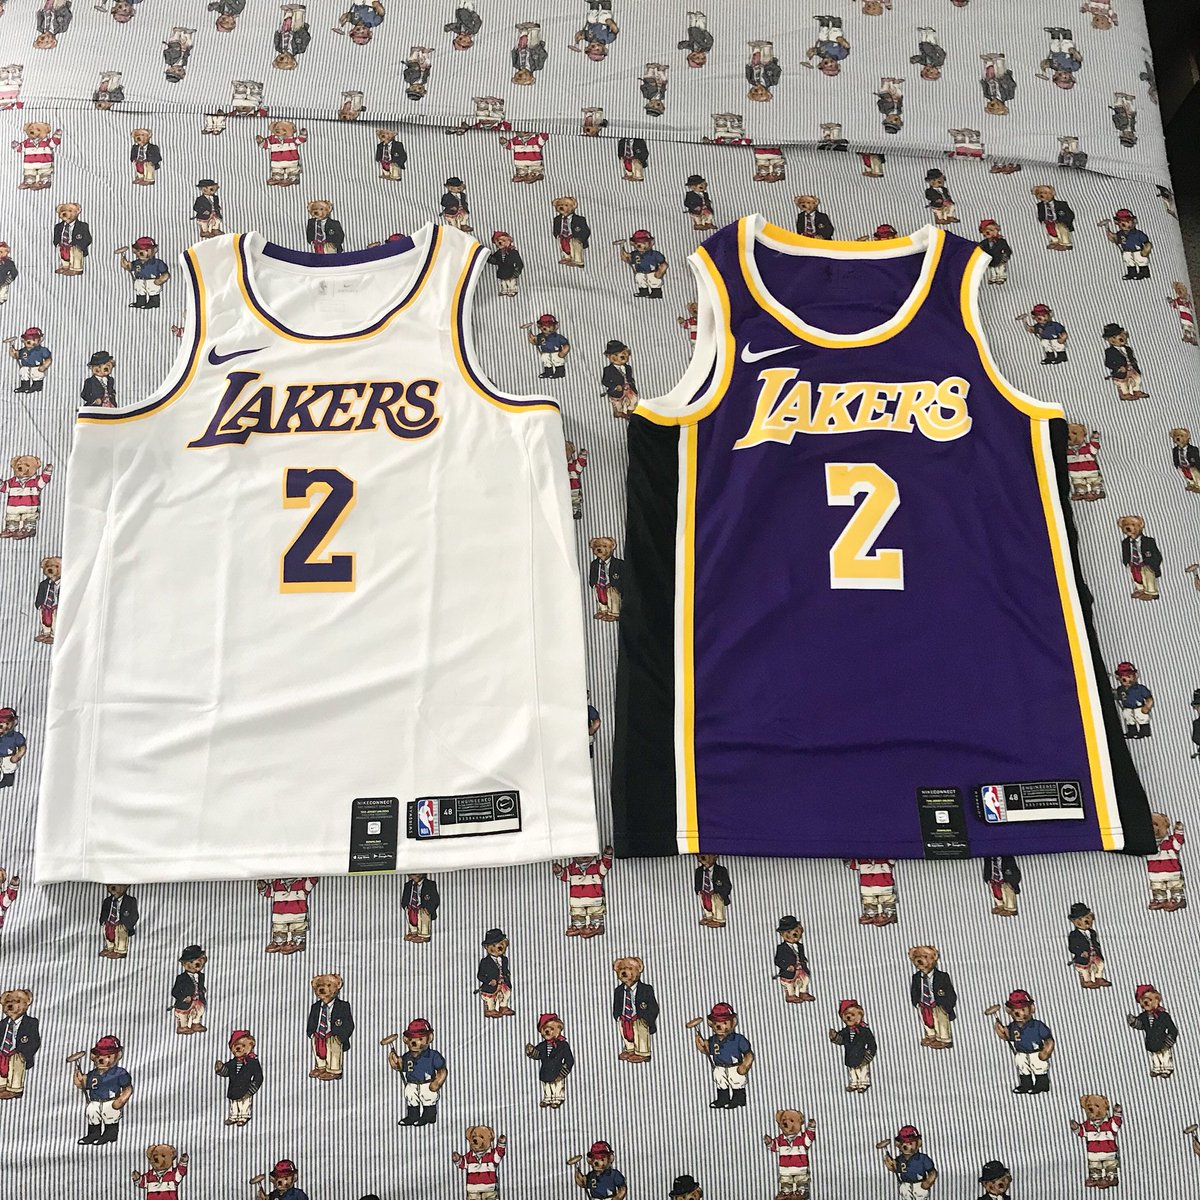 03ff47d8a These are two of every jersey that he wore during the 2017-18 NBA Season  (his rookie season) minus the MPLS jerseys. Retweet this and tag  ZO2  and  ...